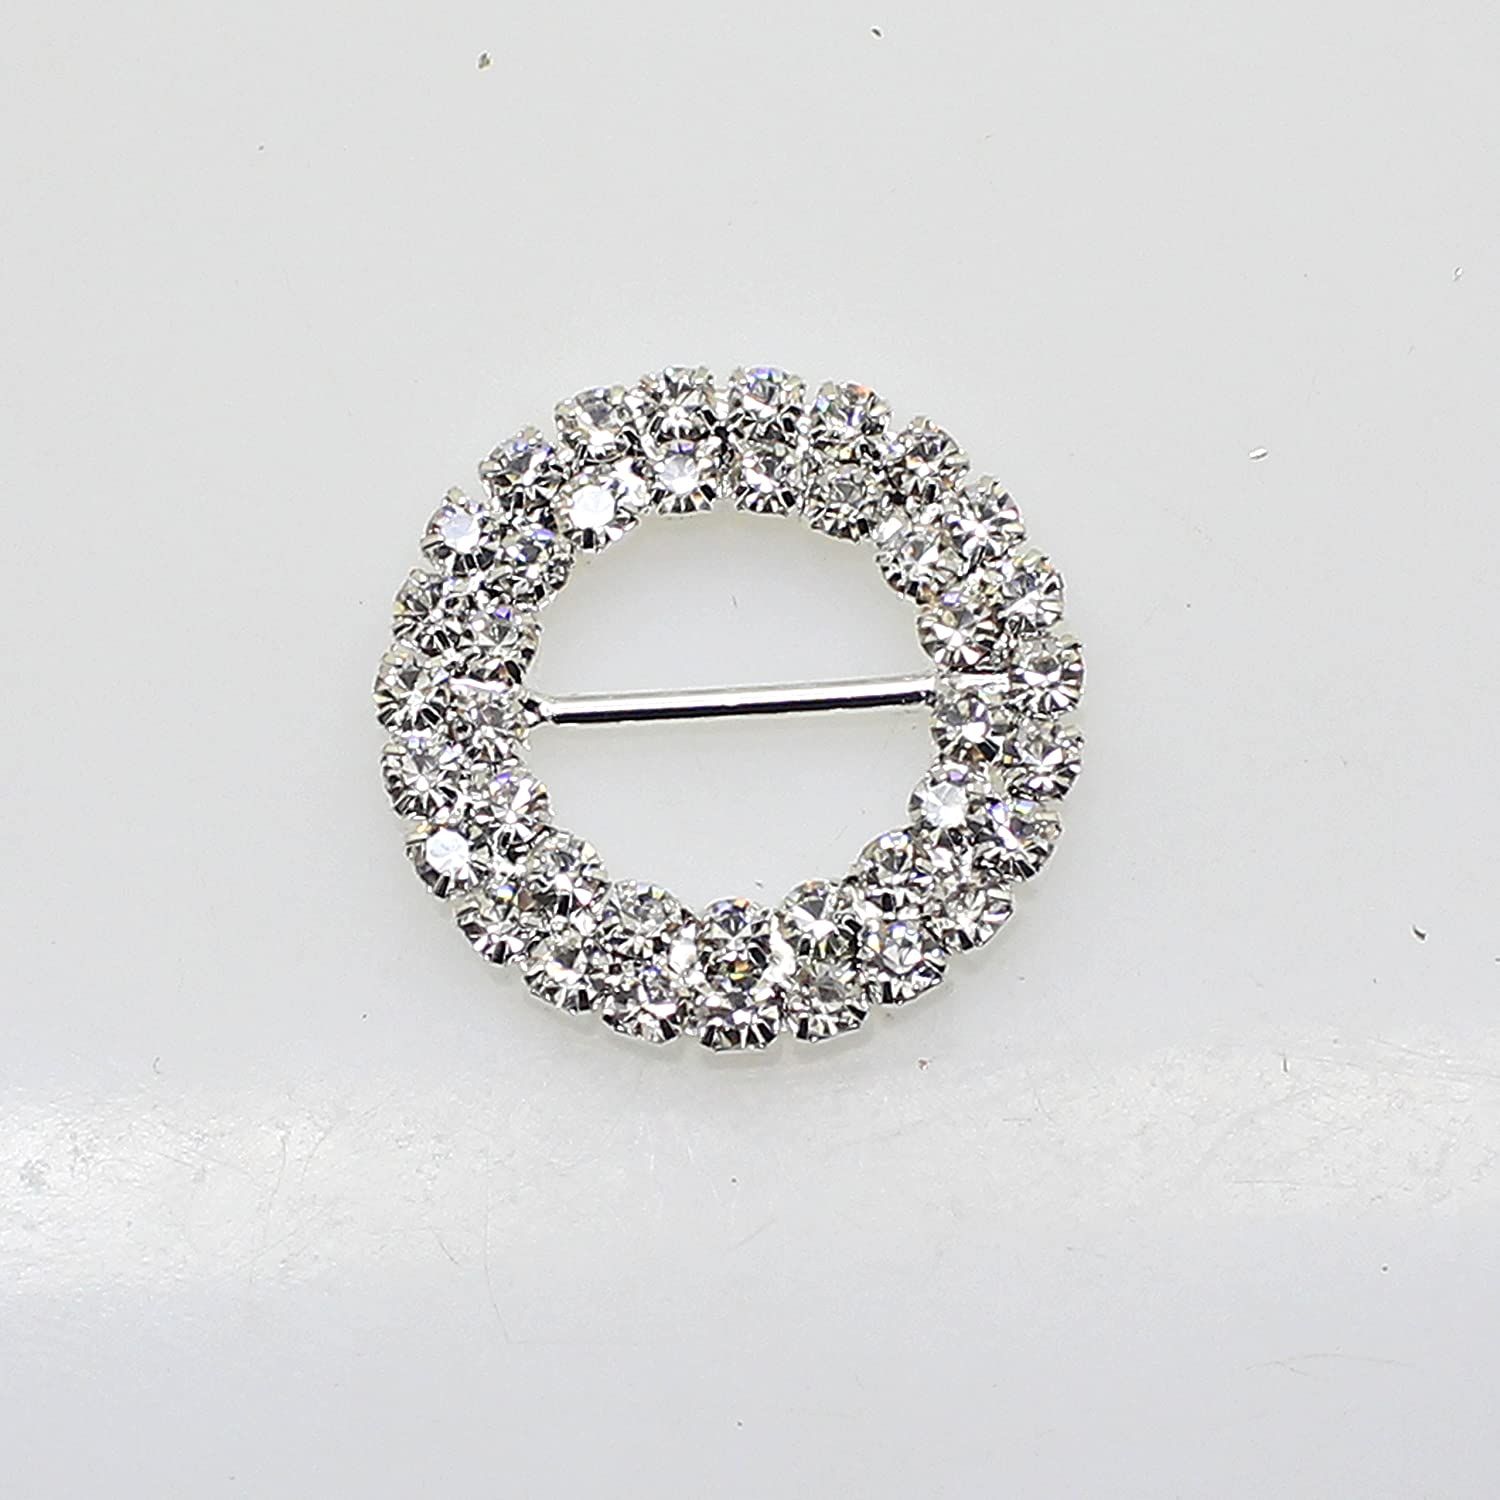 15pcs 27mm x 27mm Round Shaped Rhinestone Buckle Slider for Wedding Invitation Letter AngHui